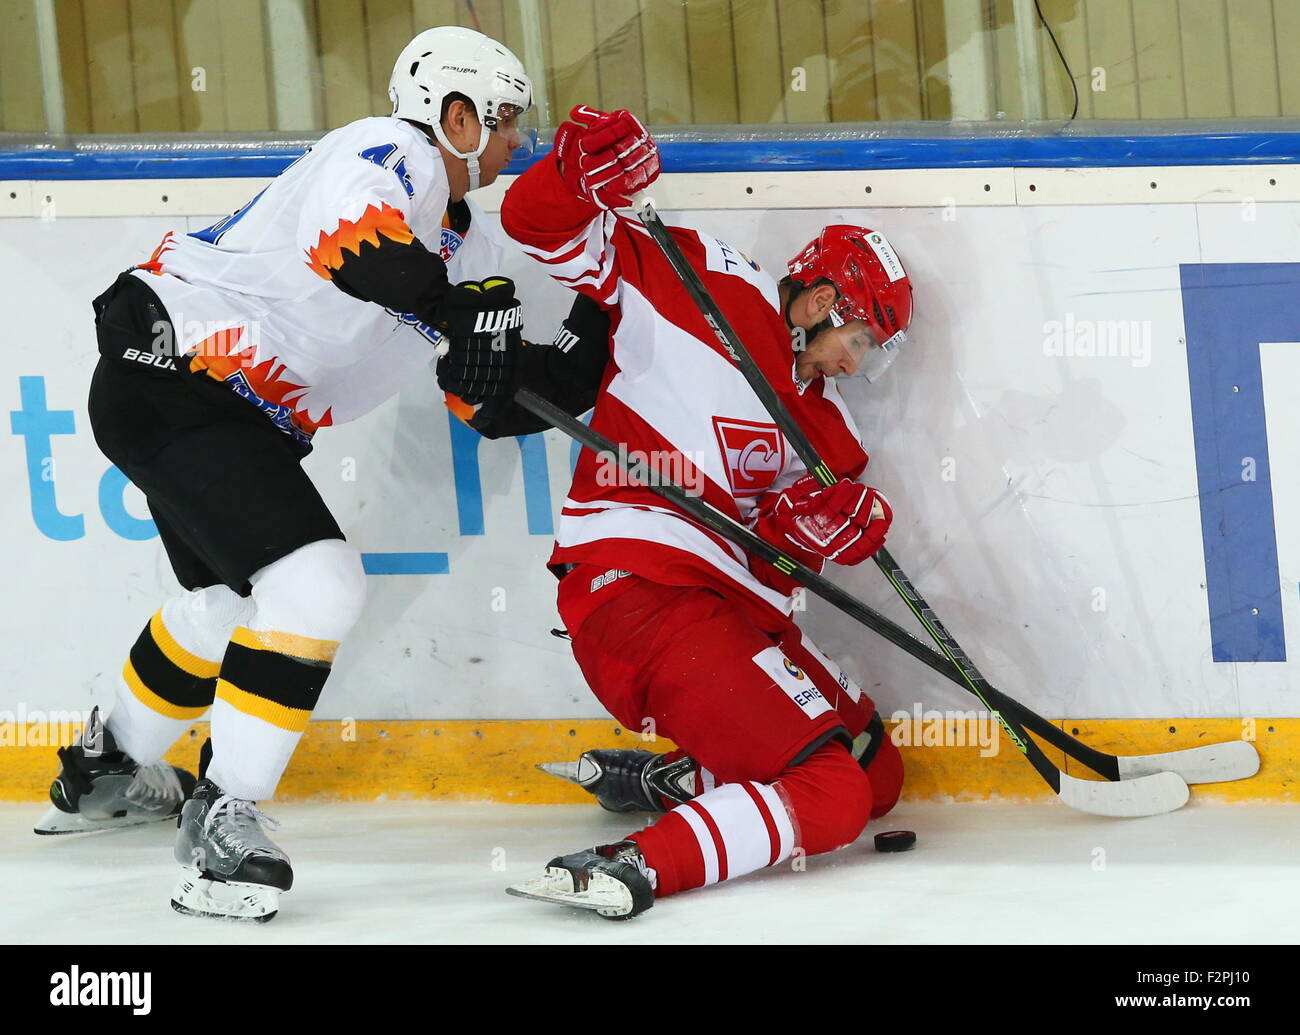 Moscow, Russia. 22nd Sep, 2015. Severstal's Andrei Konev (L) and Spartak's Artyom Voronin fight for the - Stock Image